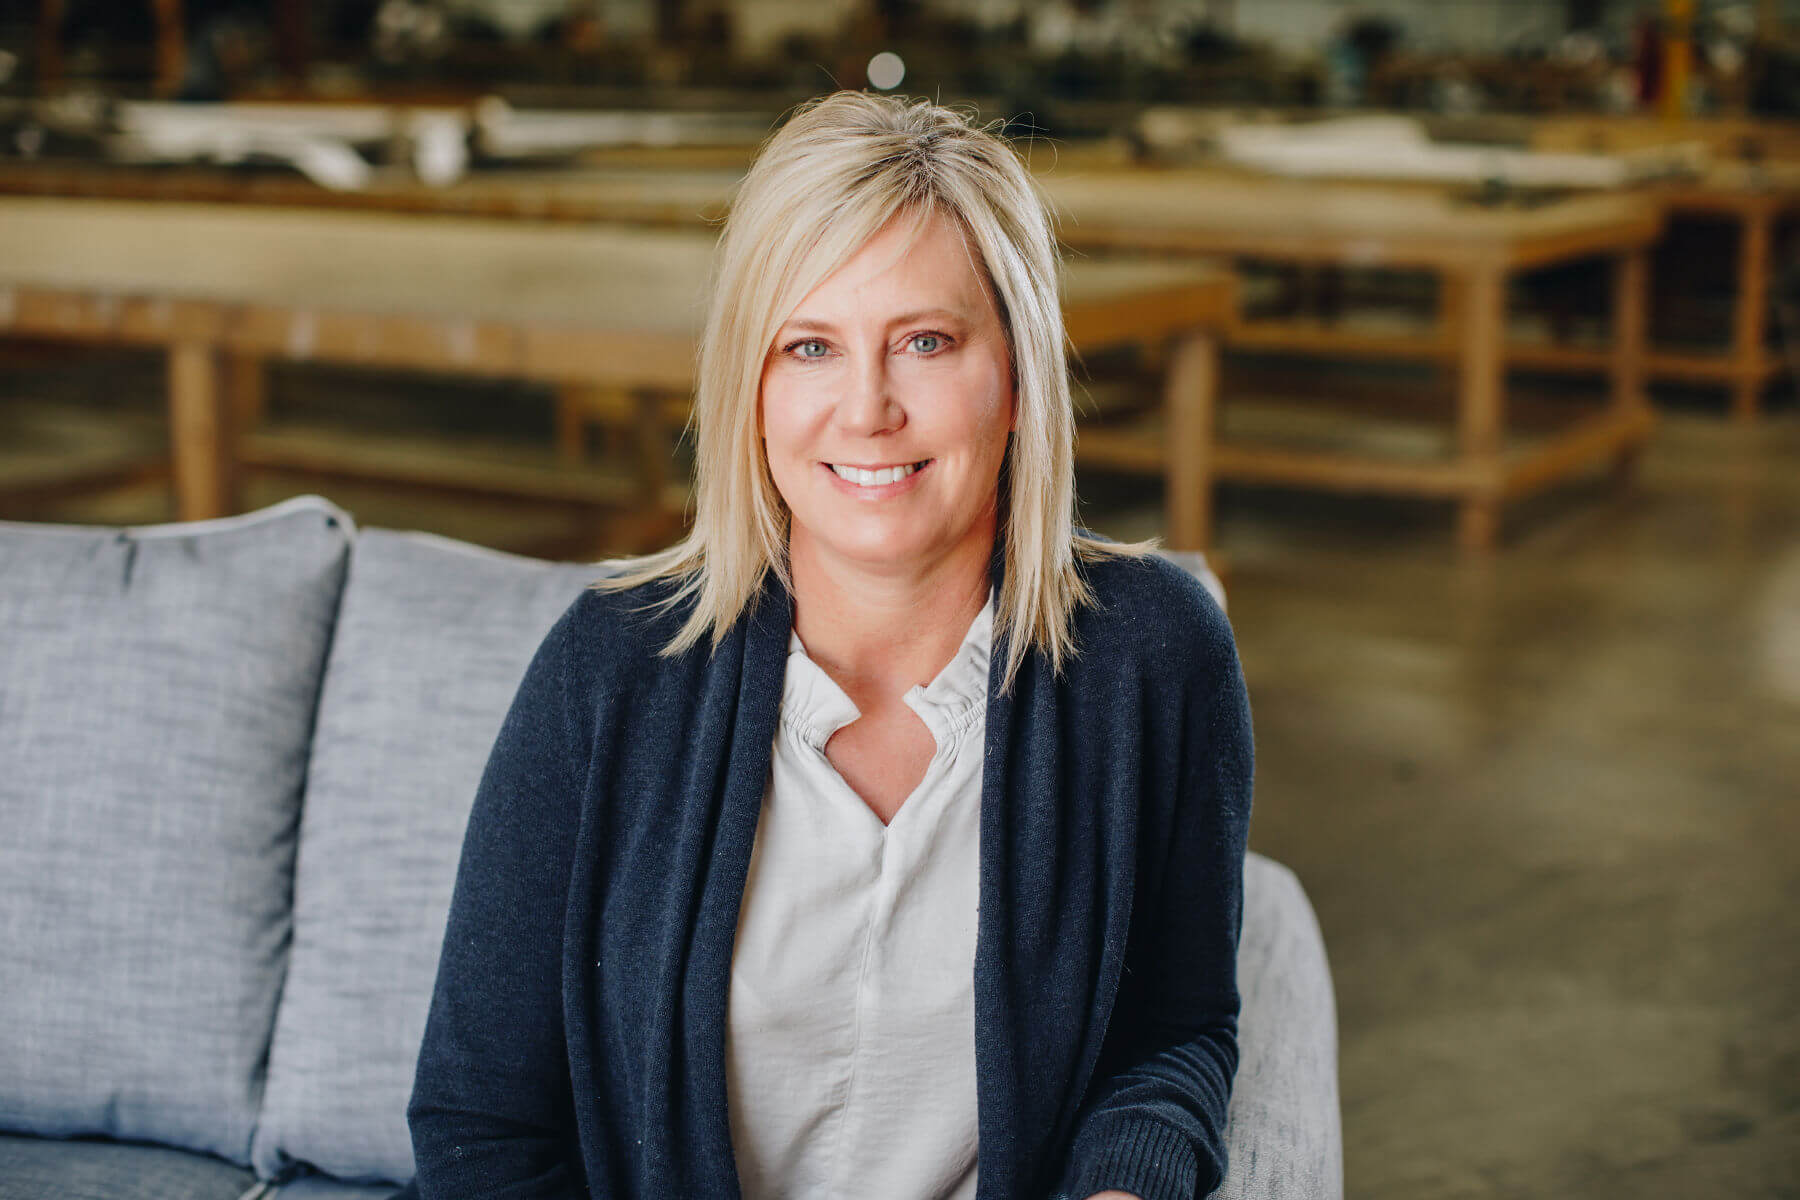 Fusion Furniture owner and merchandiser, Alison Robbins